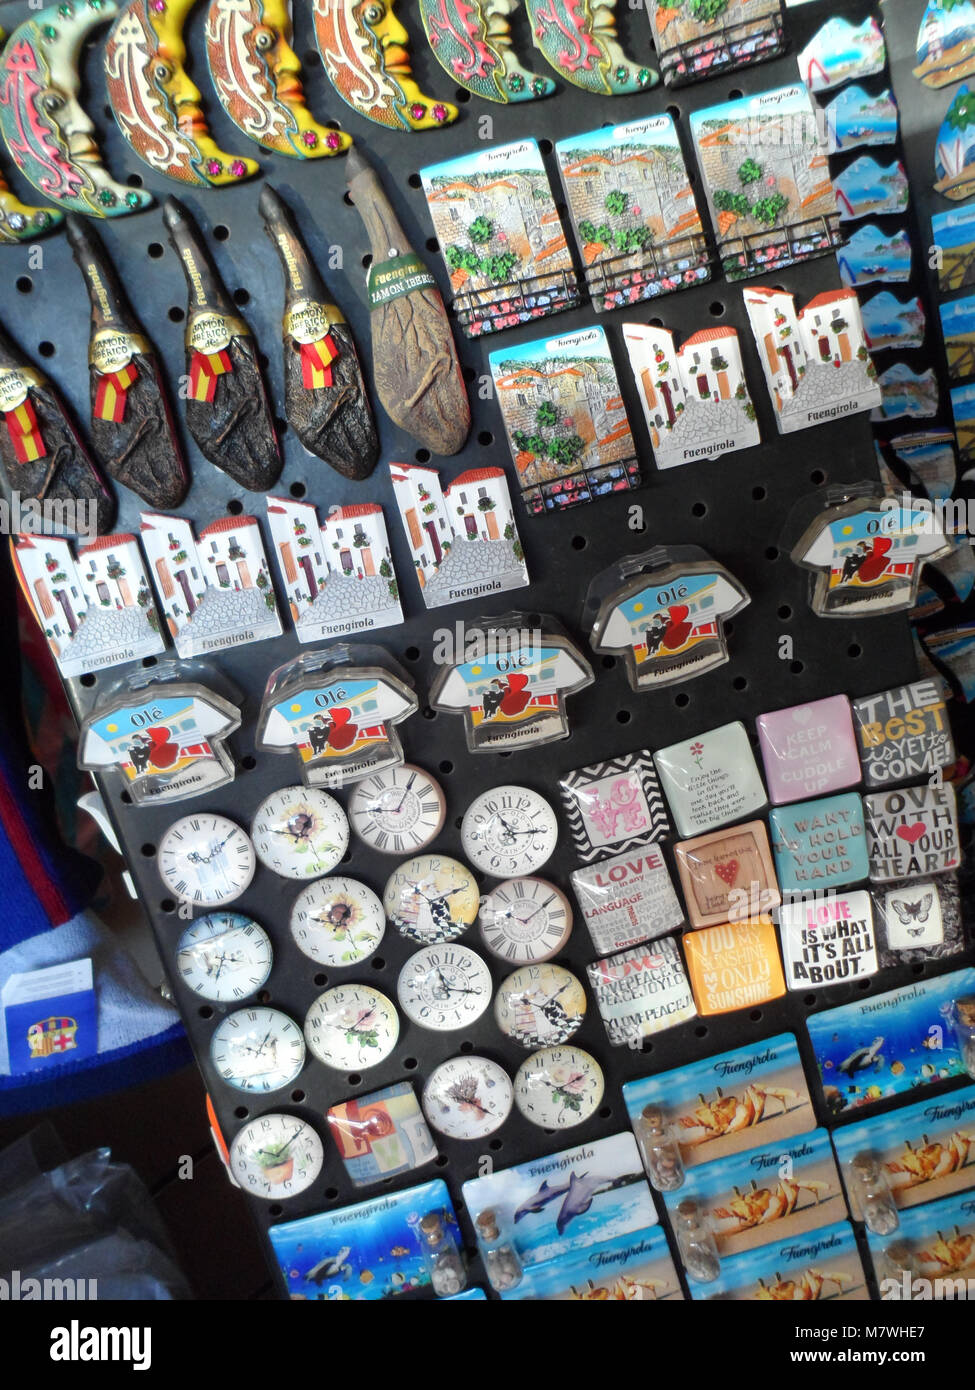 A collection of fridge magnets in a tourist shop taken in Fuengirola, Spain - Stock Image